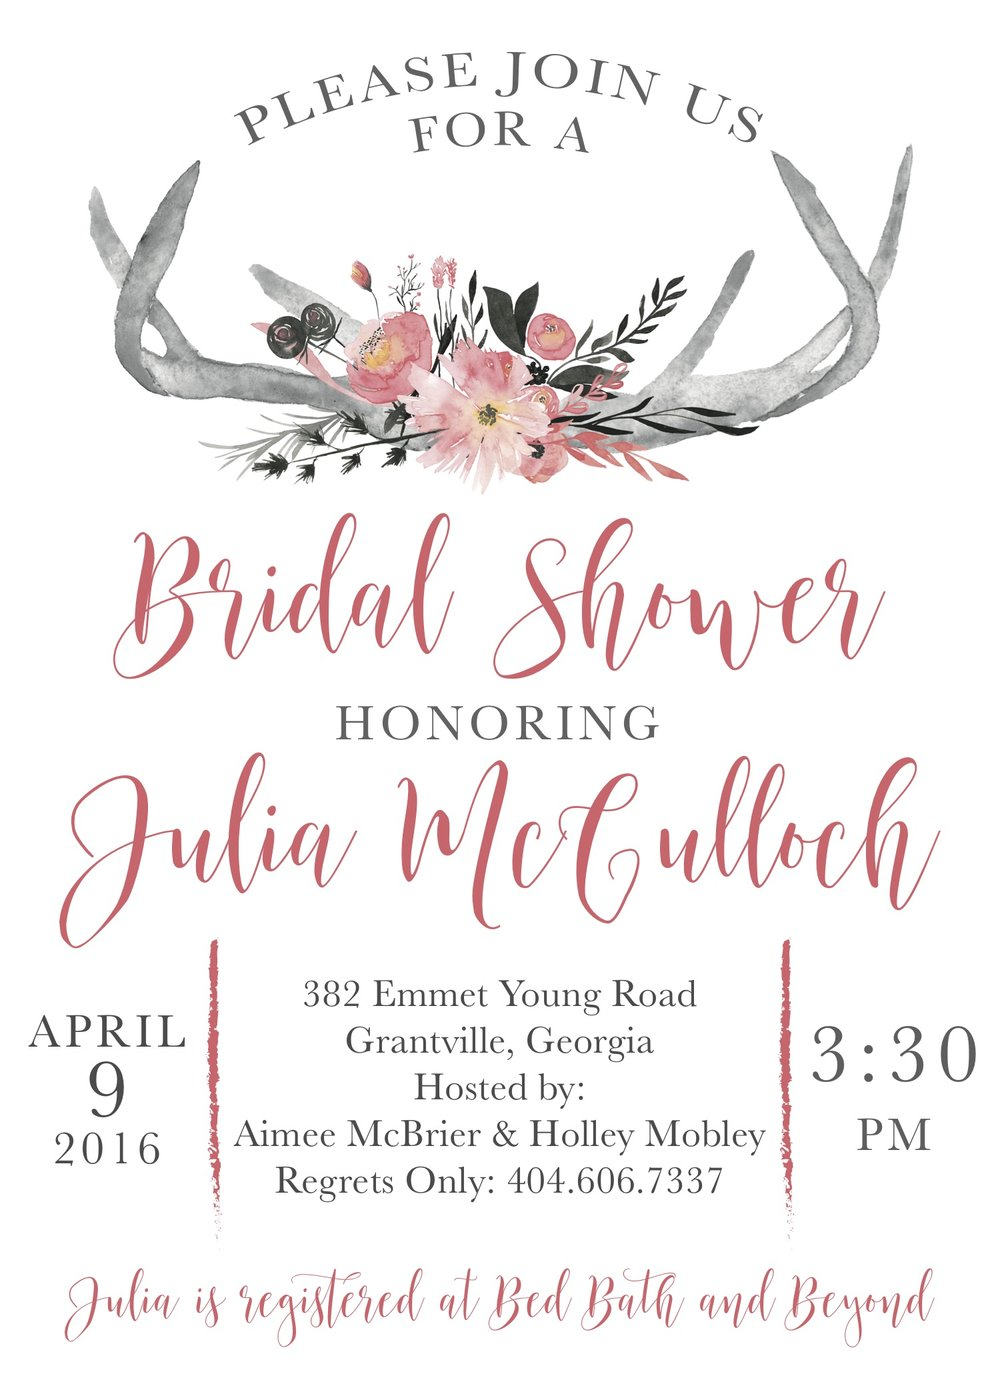 Bridal Shower Invitation.jpg